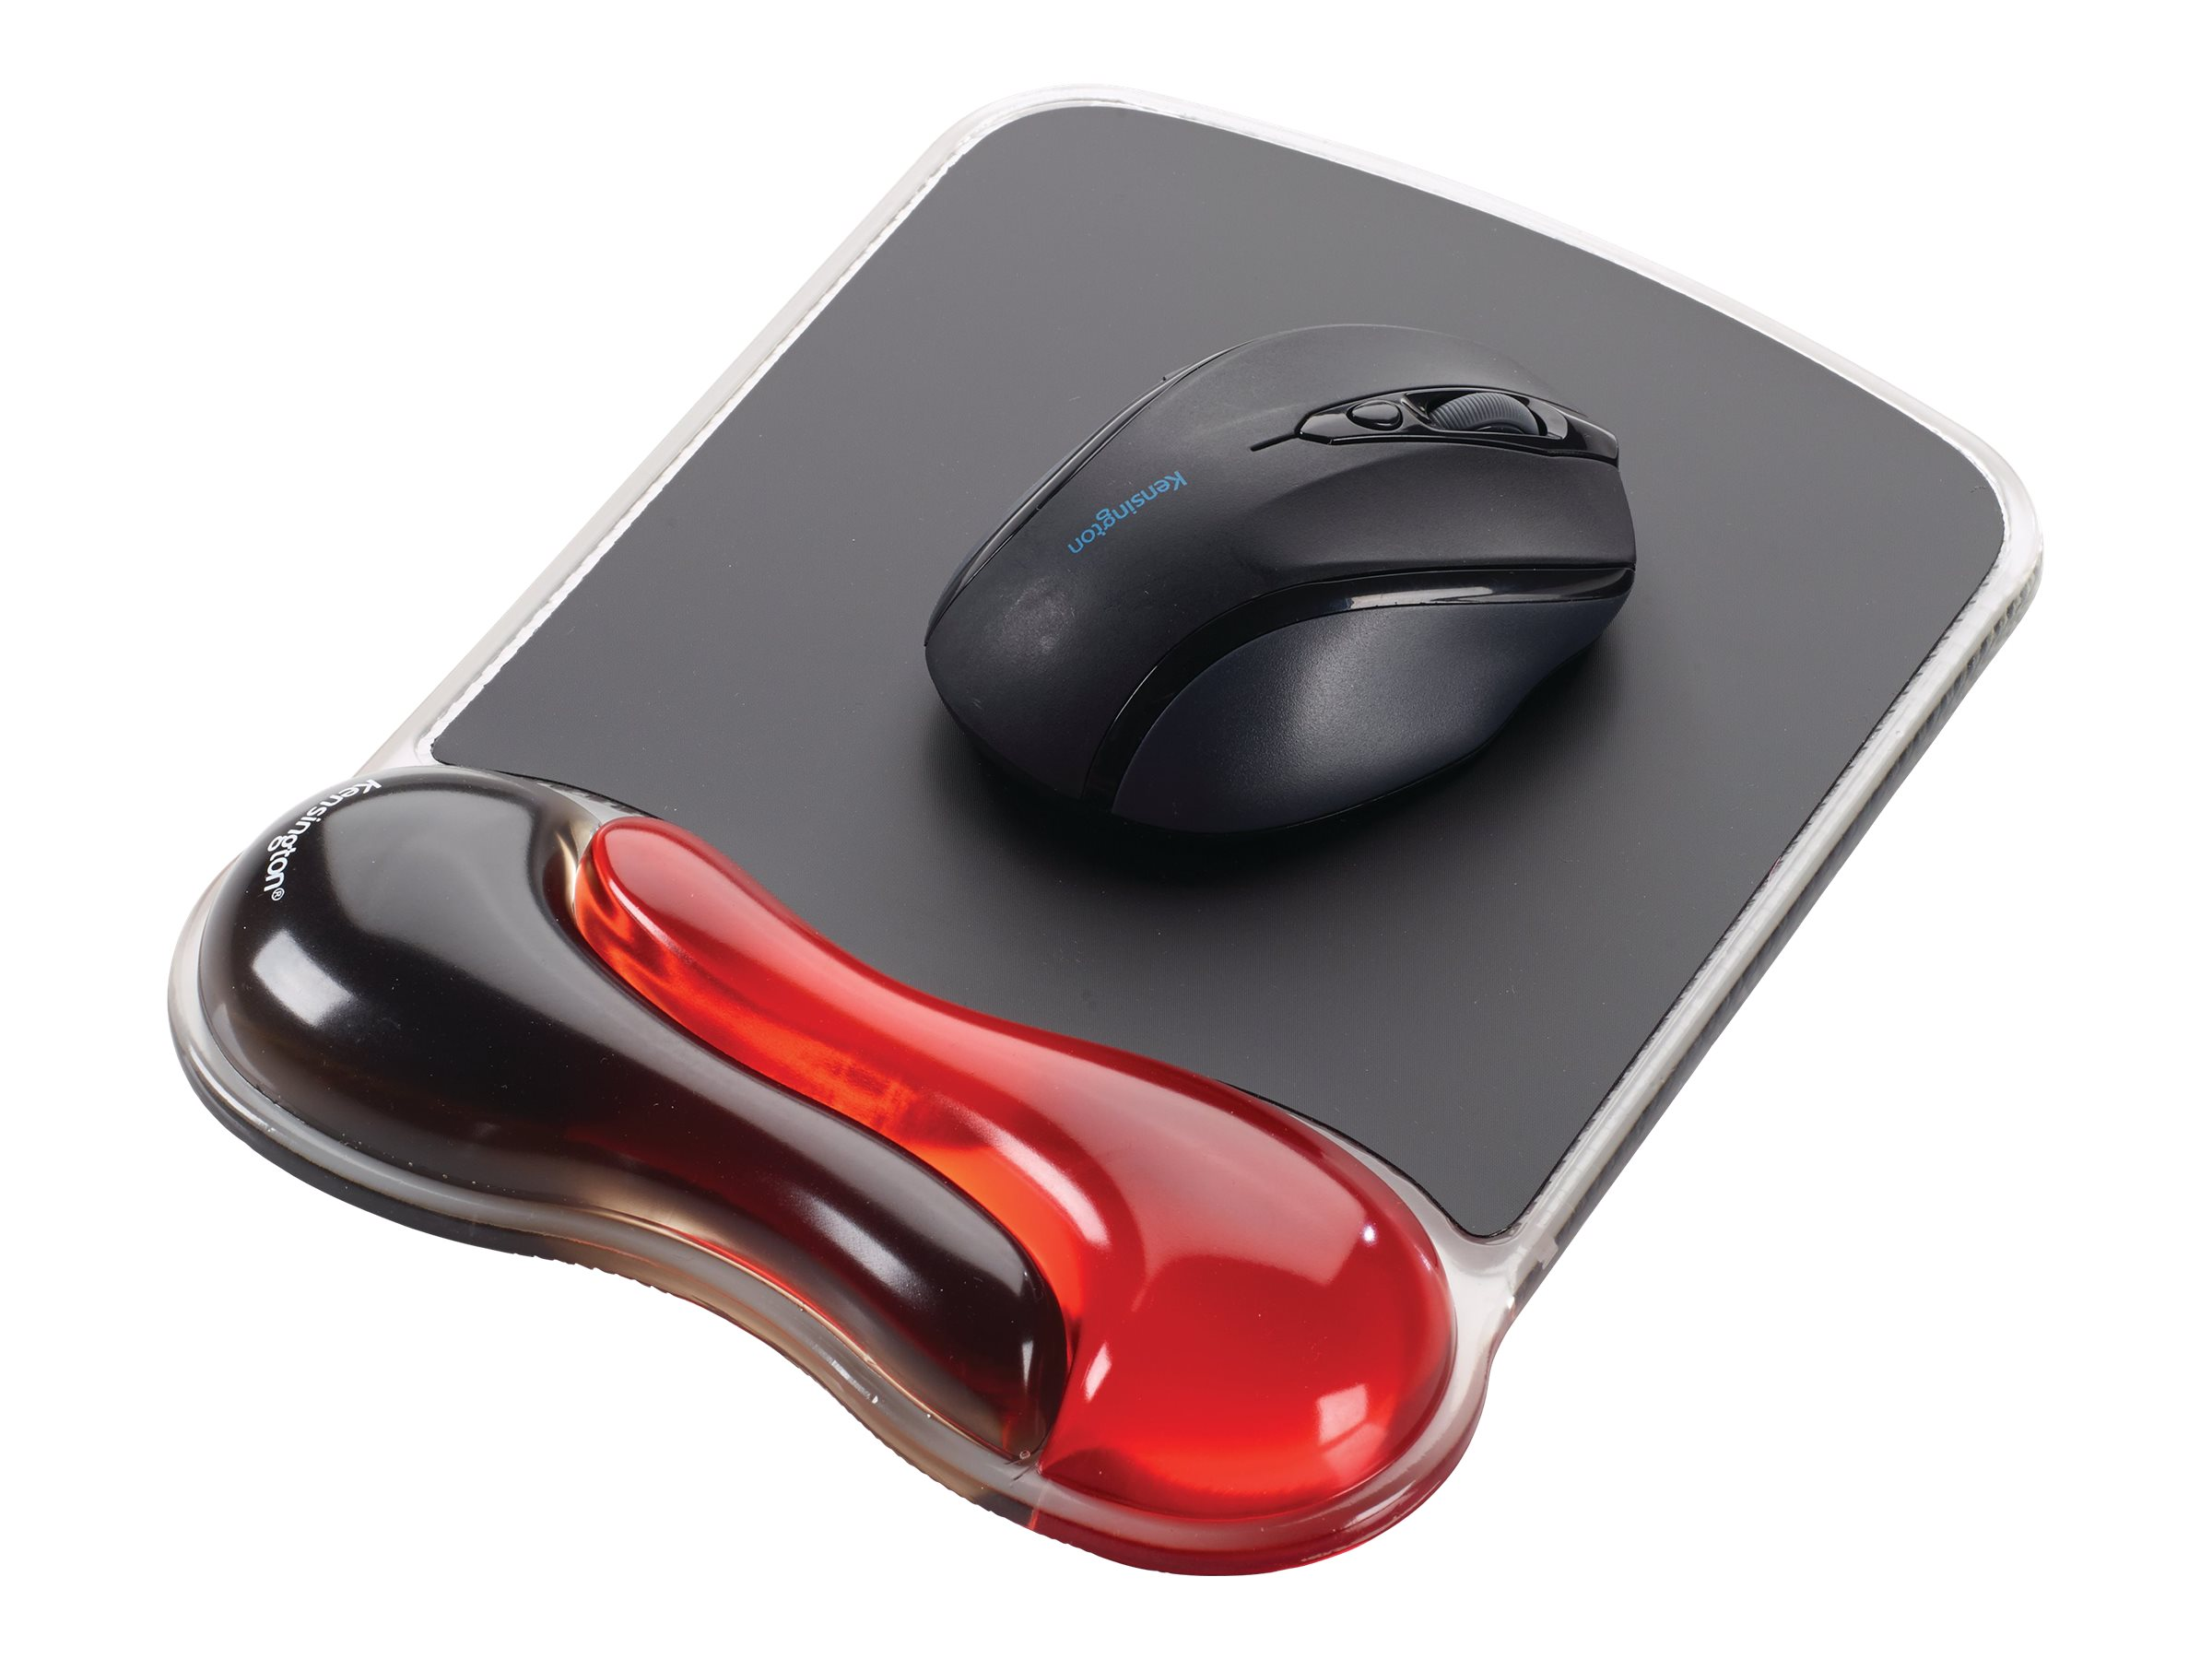 Kensington Duo Gel Wave M Wrist Rest for Mouse, Red